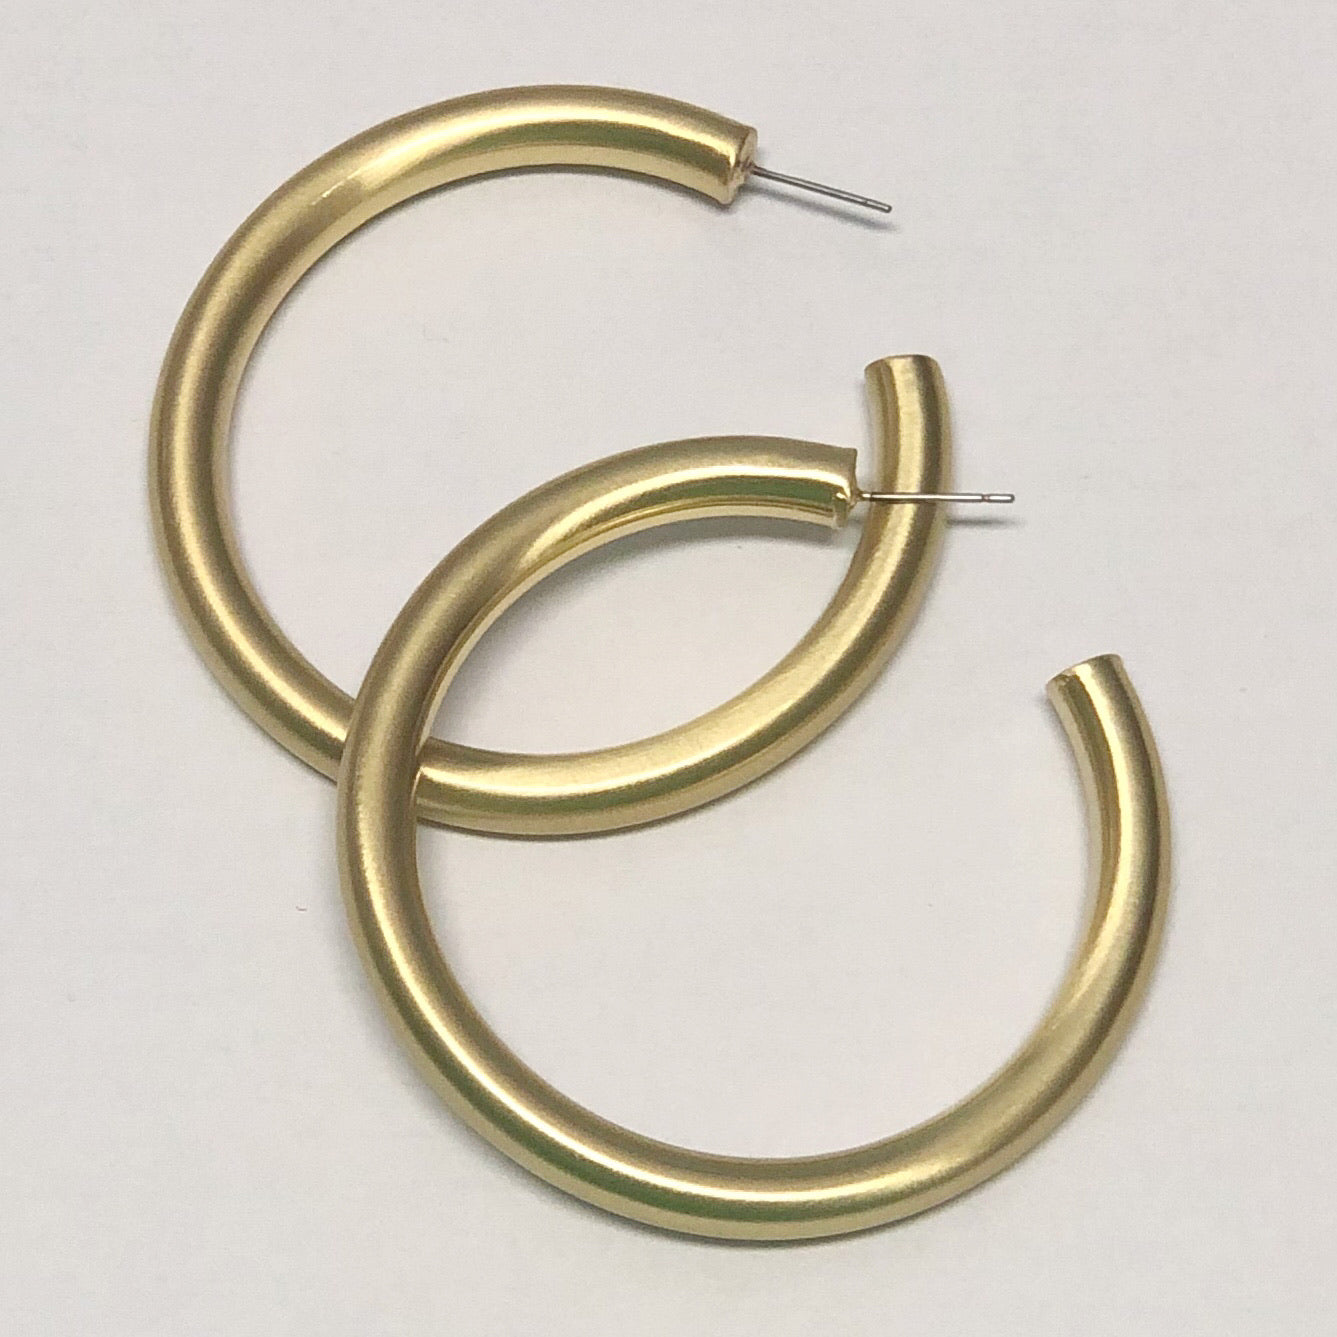 GOLD LARGE HOLLOW HOOP